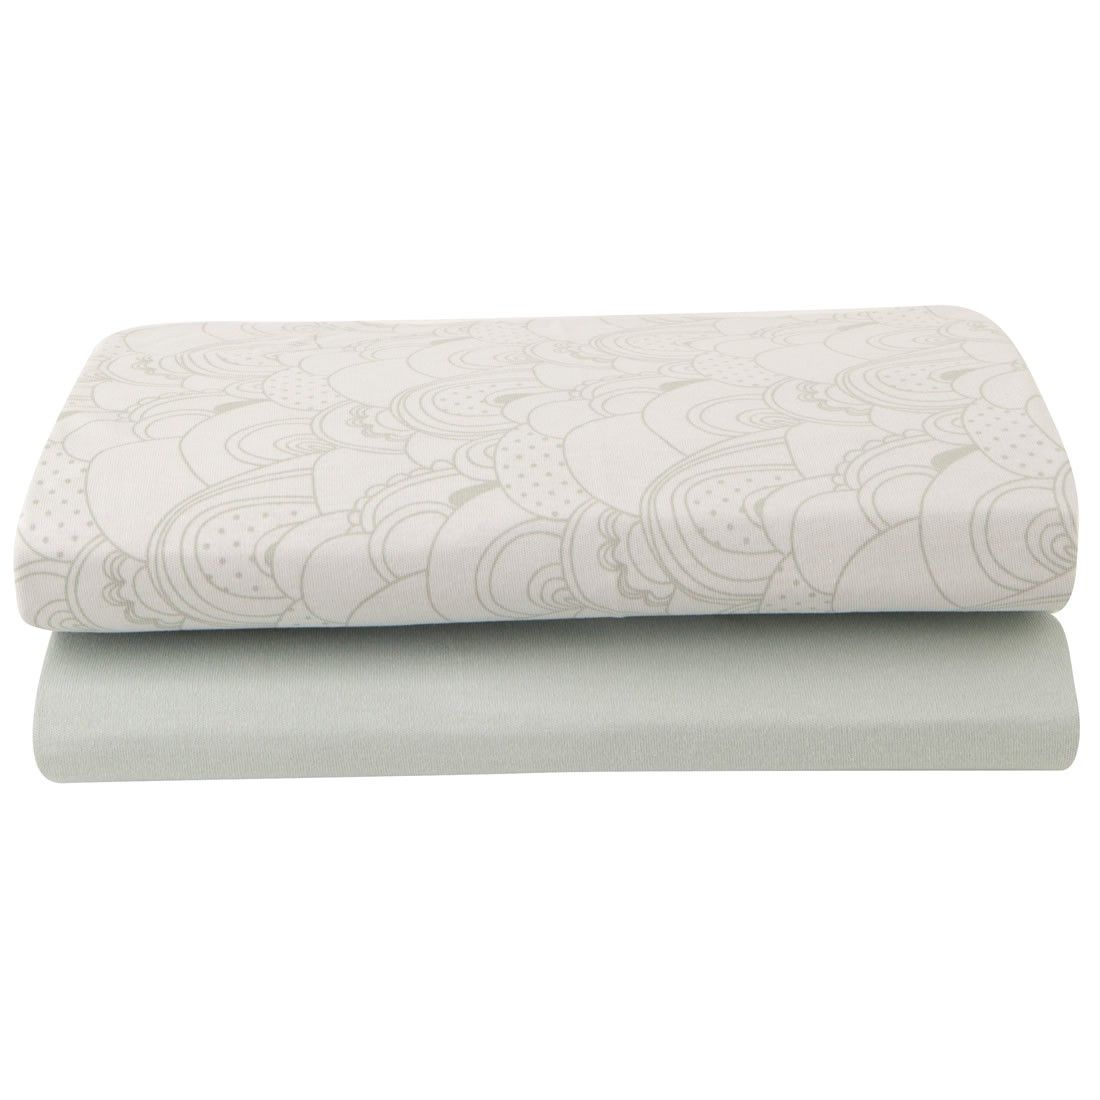 Love Mae Cot Fitted Sheet Set - Sleeping in the Clouds